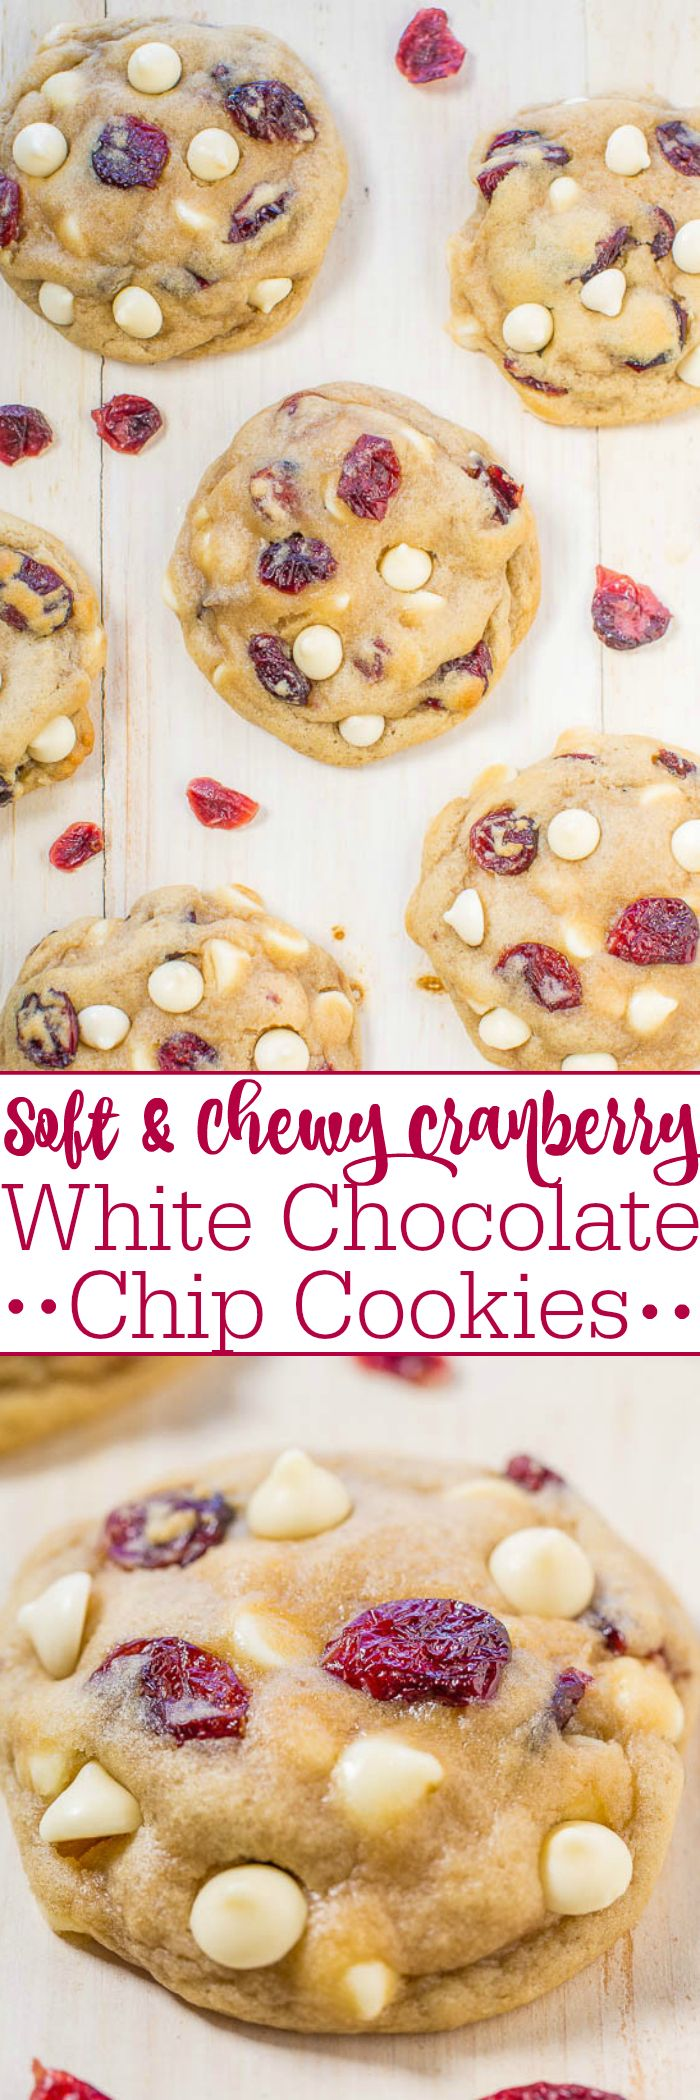 Soft and Chewy Cranberry White Chocolate Chip Cookies - Super soft, buttery, and a holiday baking must-make!! Very popular at cookie exchanges and everyone will want the recipe! So good!!